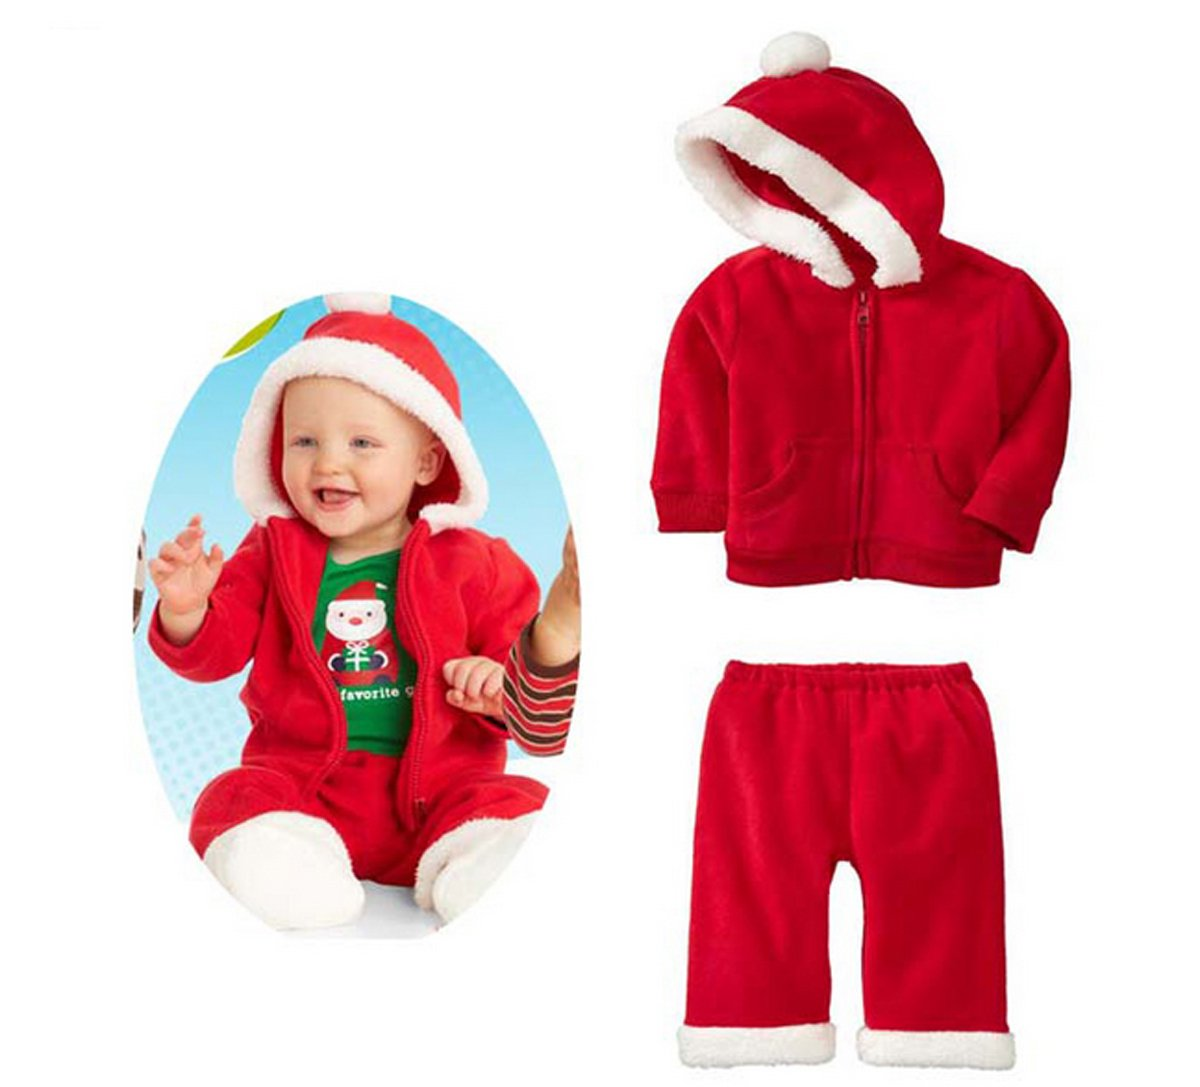 SOPO Baby Boy Christmas 2 Pc Outfits (Hoodie Jacket & Pants) 1-5Y Red (5t)